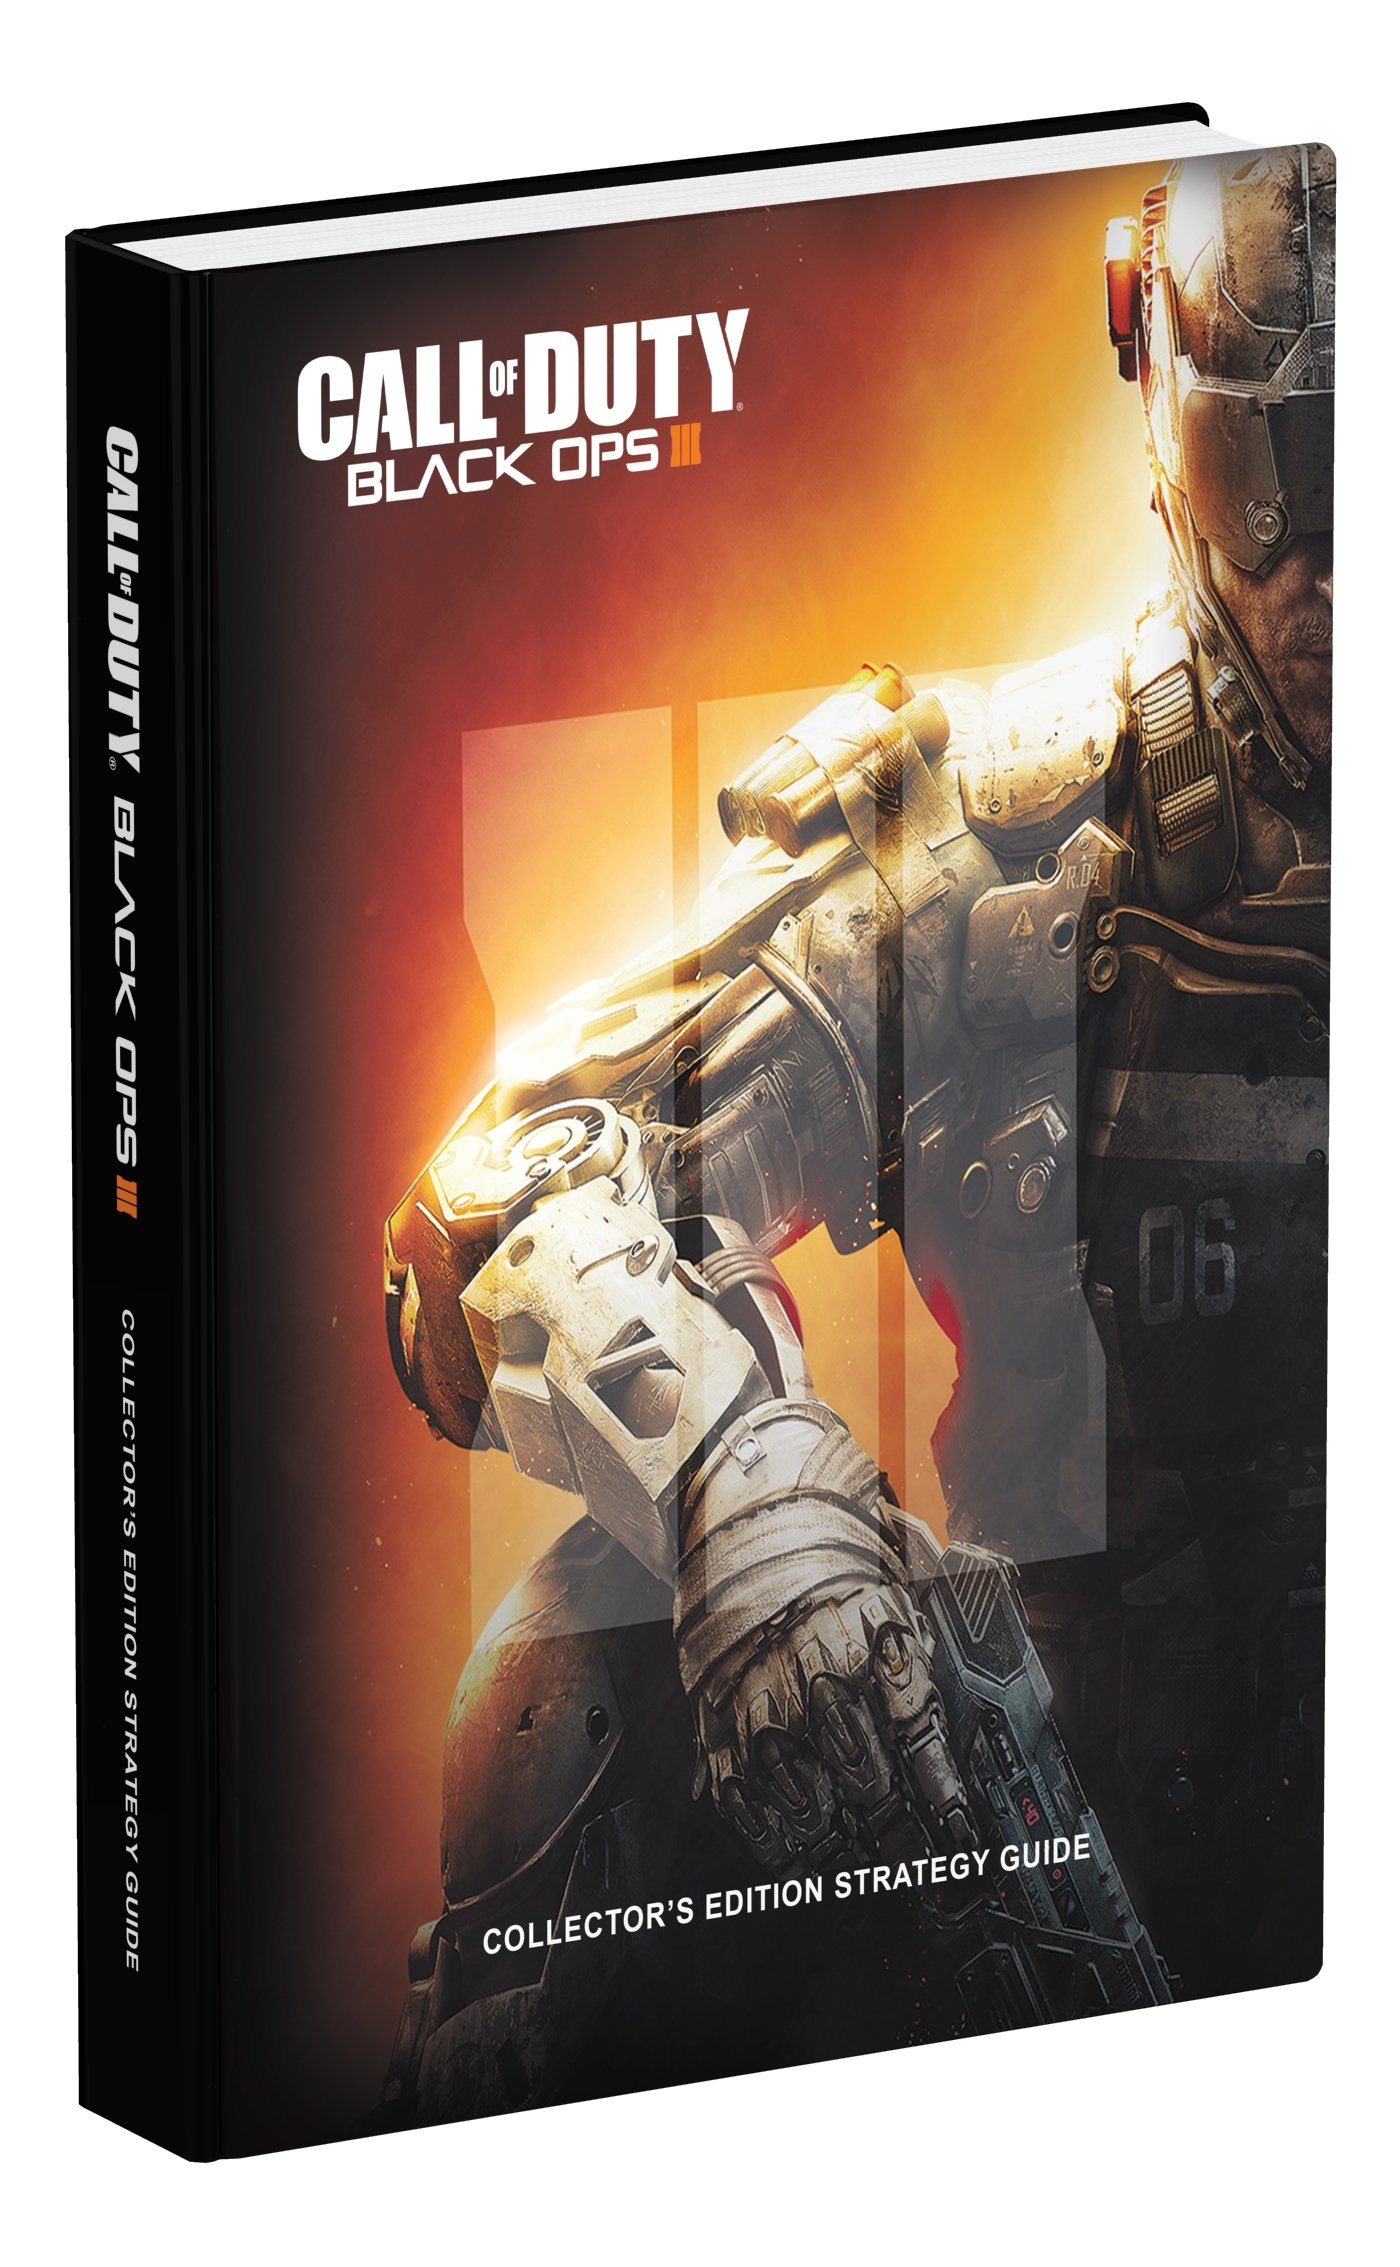 Guia de Estratégias - Call of Duty: Black Ops III Collector's Ed